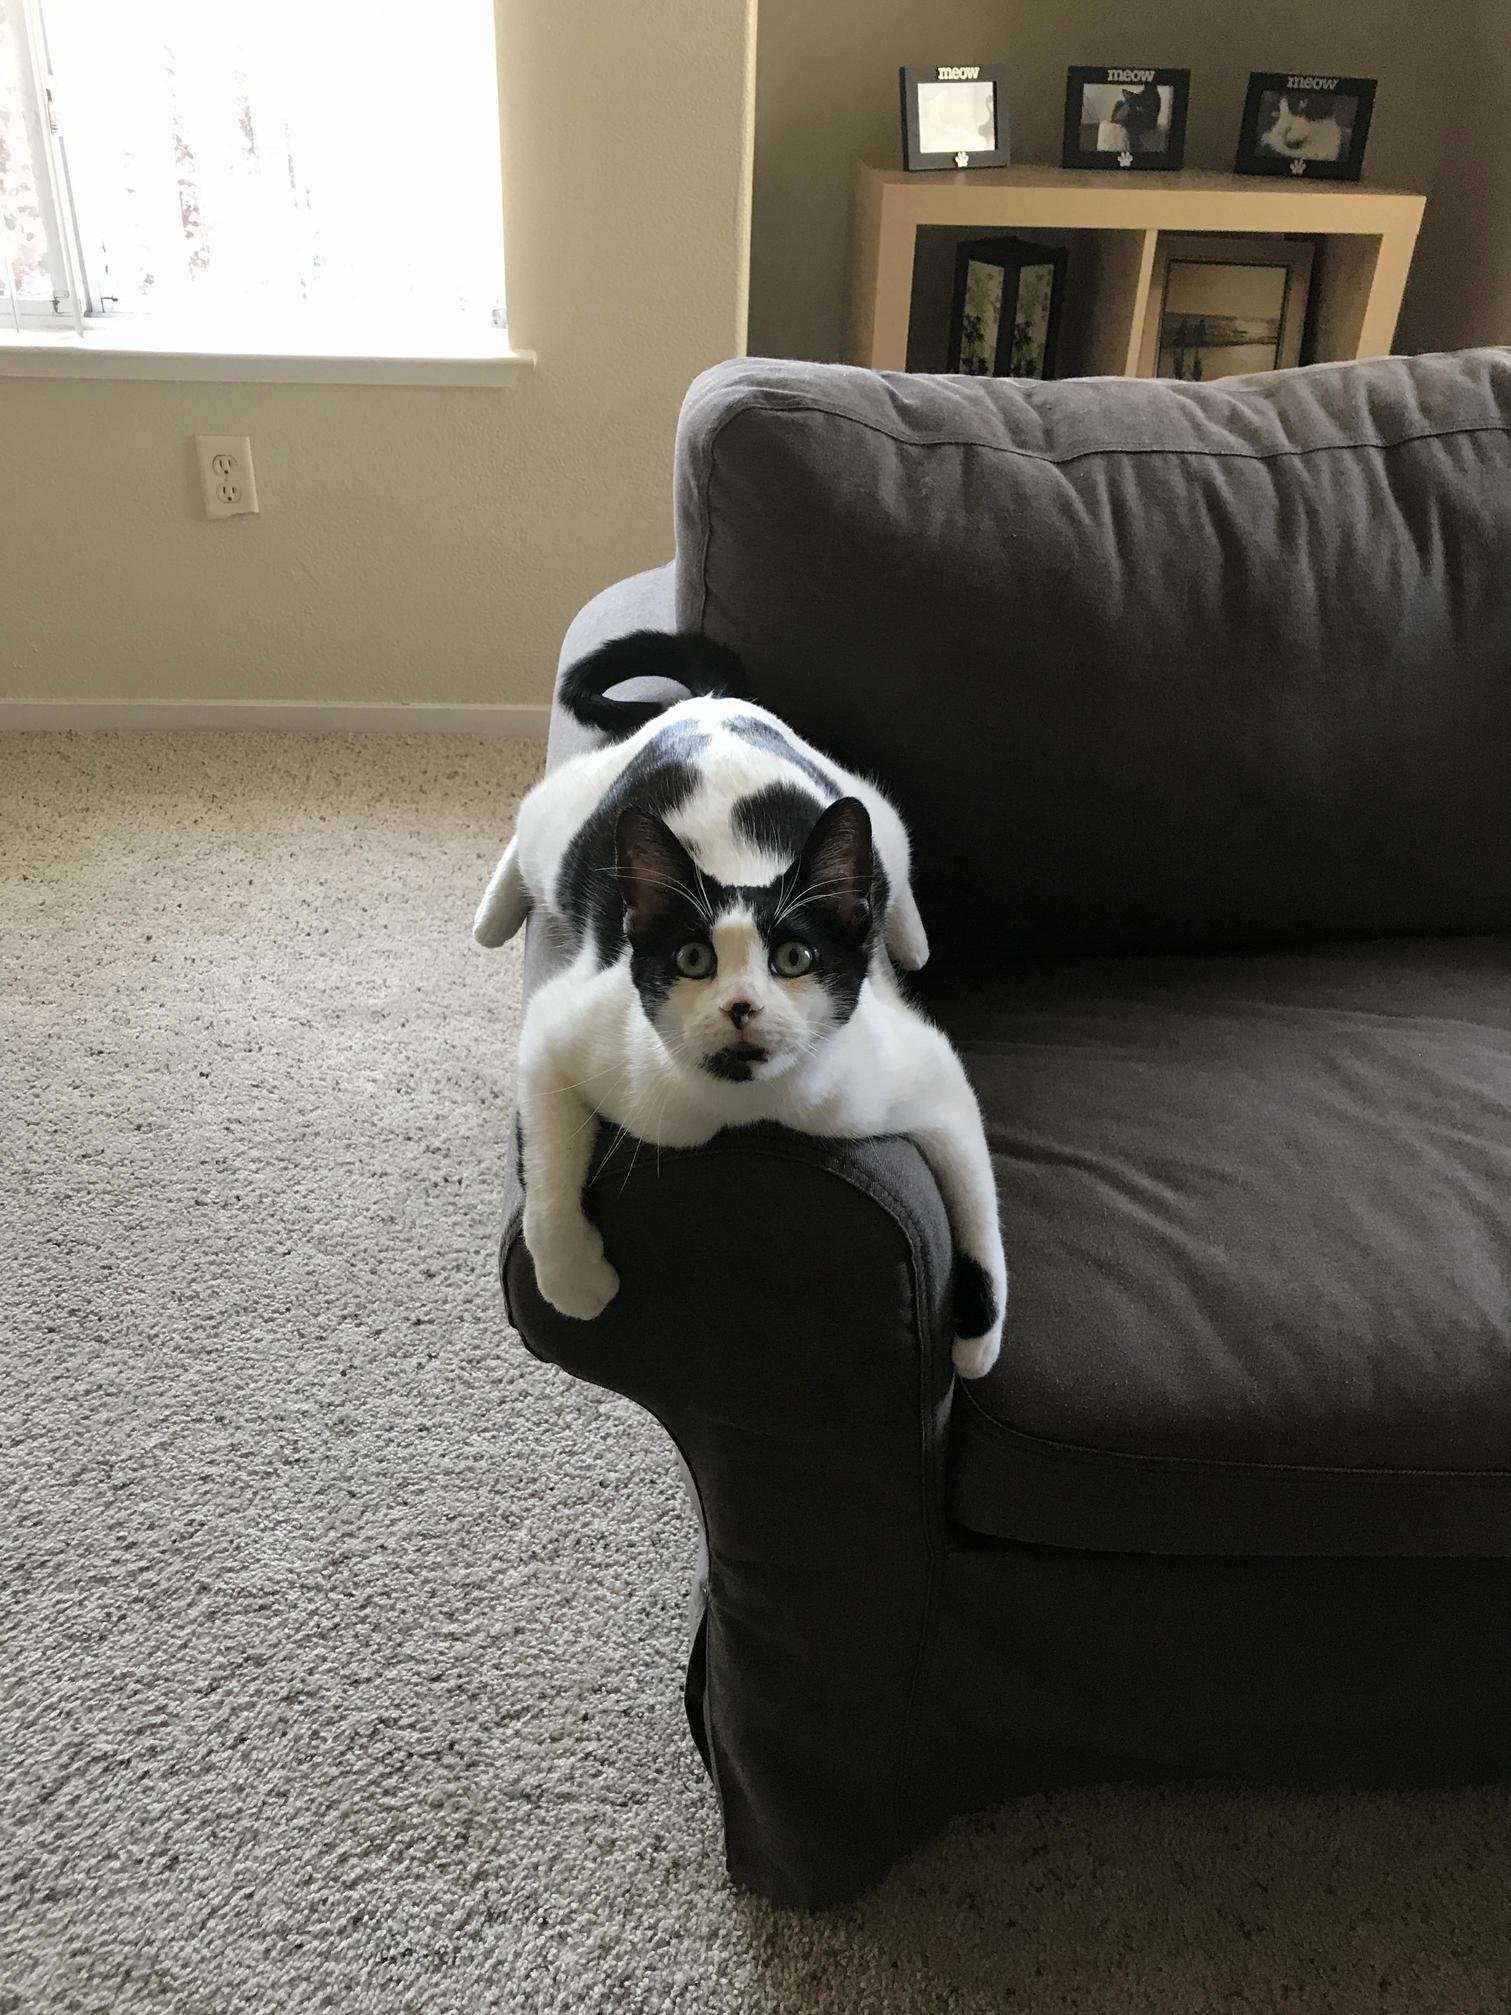 She likes to saddle the arm of the couch